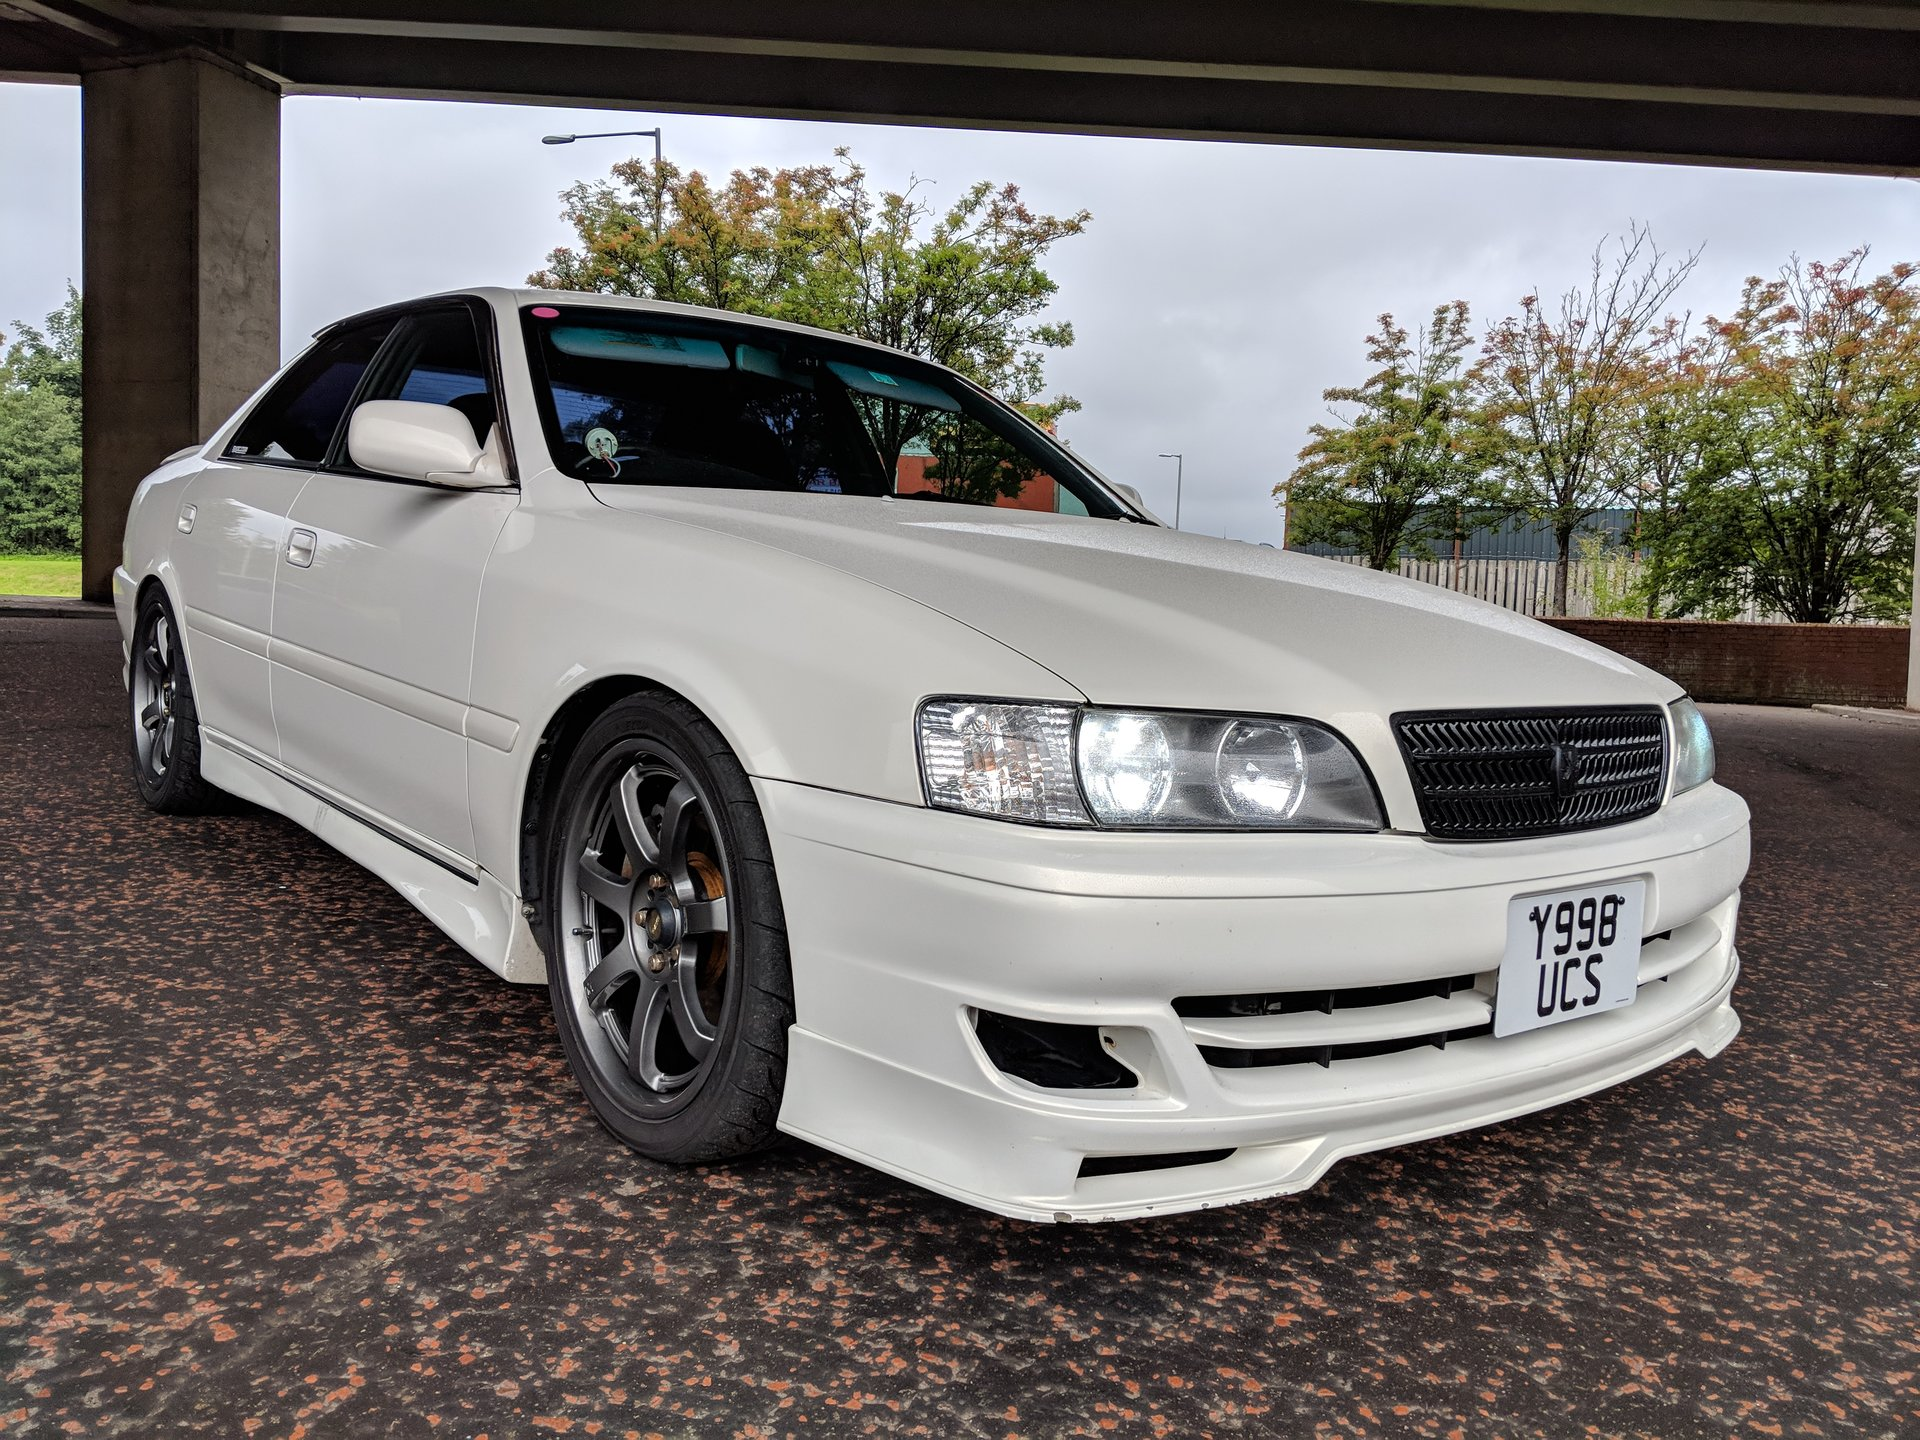 Car Timing Belt >> For Sale - 2001 JZX100 Toyota Chaser Tourer V | Driftworks Forum